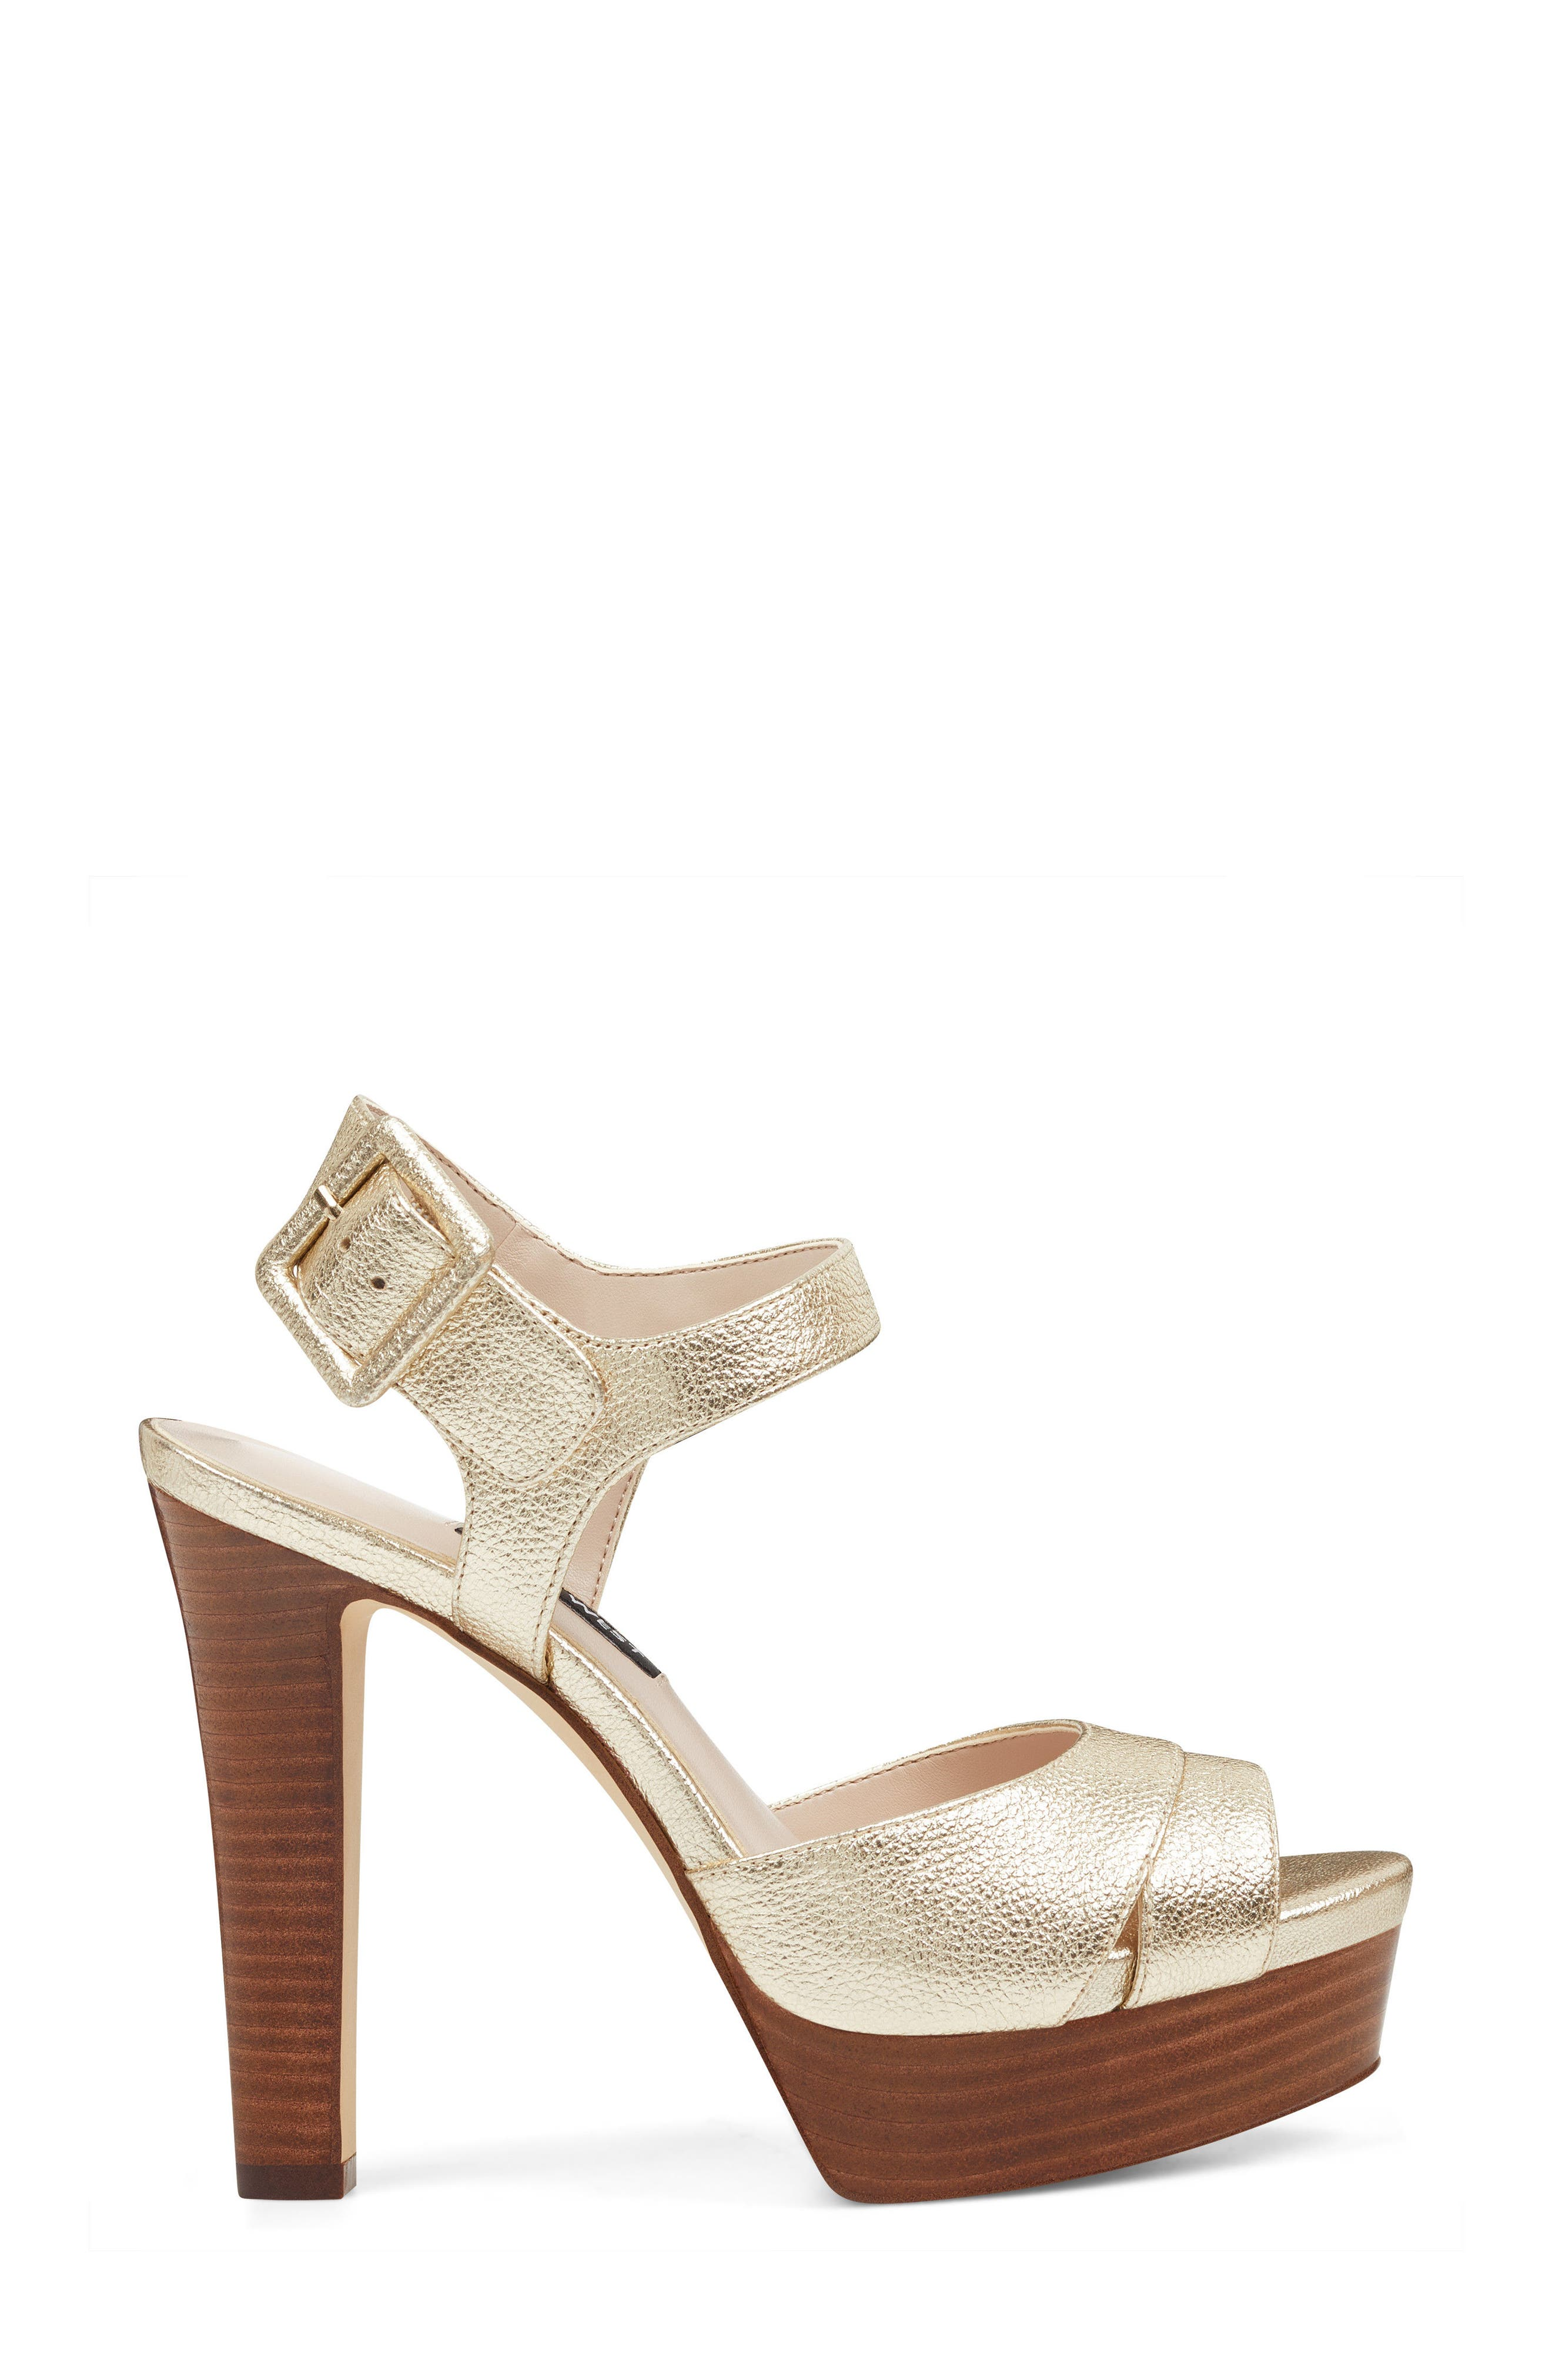 Ibyn Platform Sandal,                             Alternate thumbnail 3, color,                             Light Gold Leather